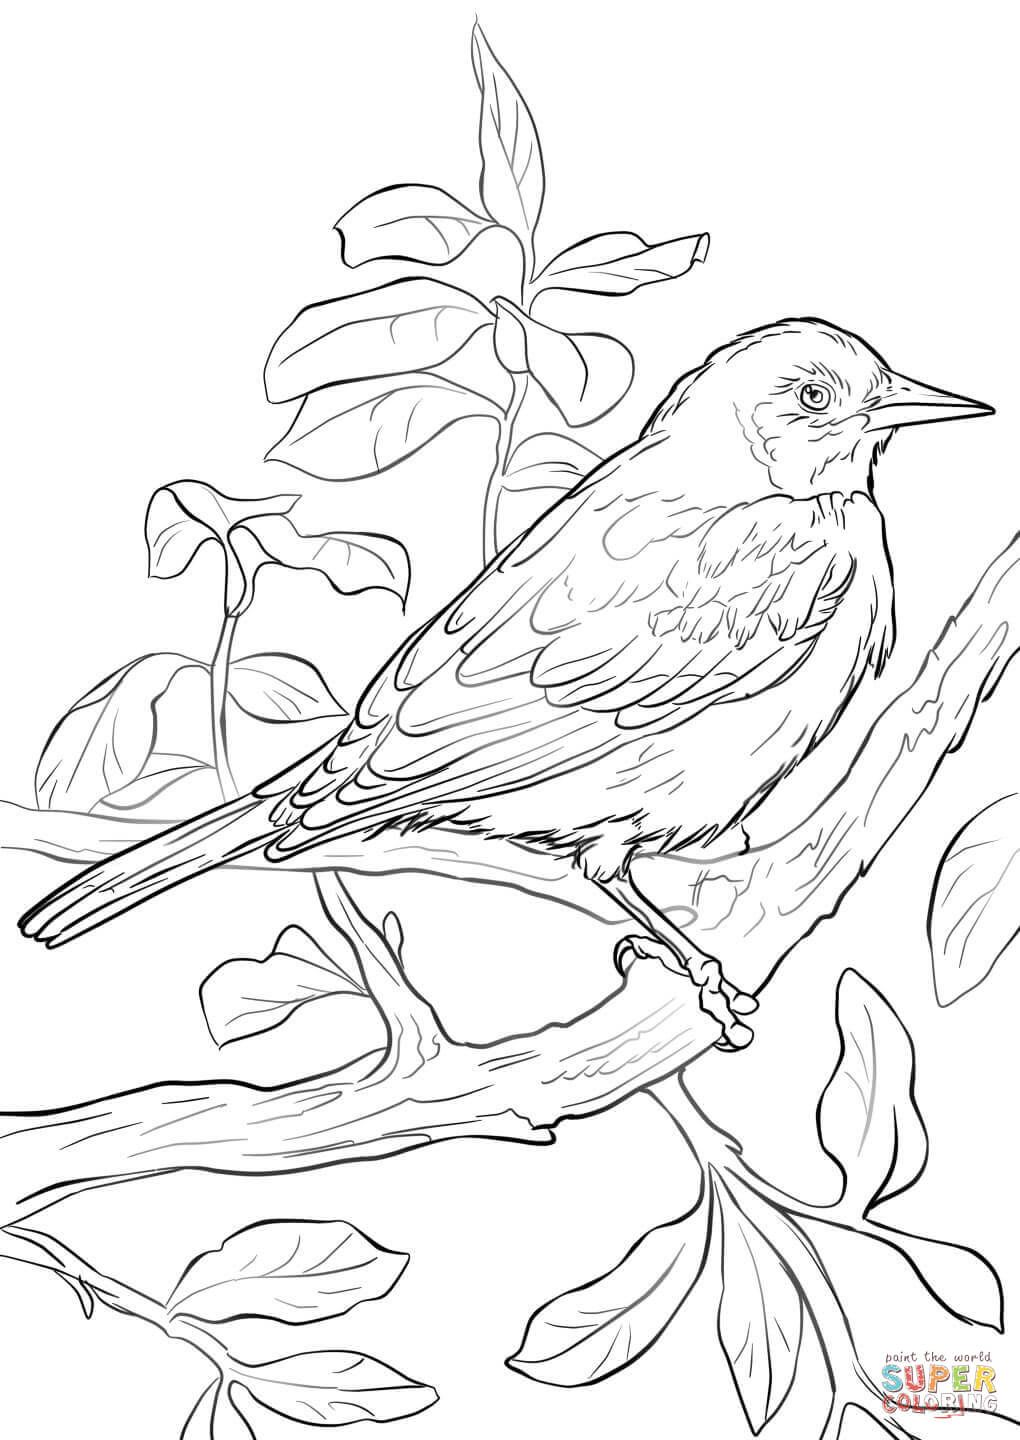 Baltimore Oriole Bird Template Free Google Search Bird Coloring Pages Bird Drawings Baseball Coloring Pages